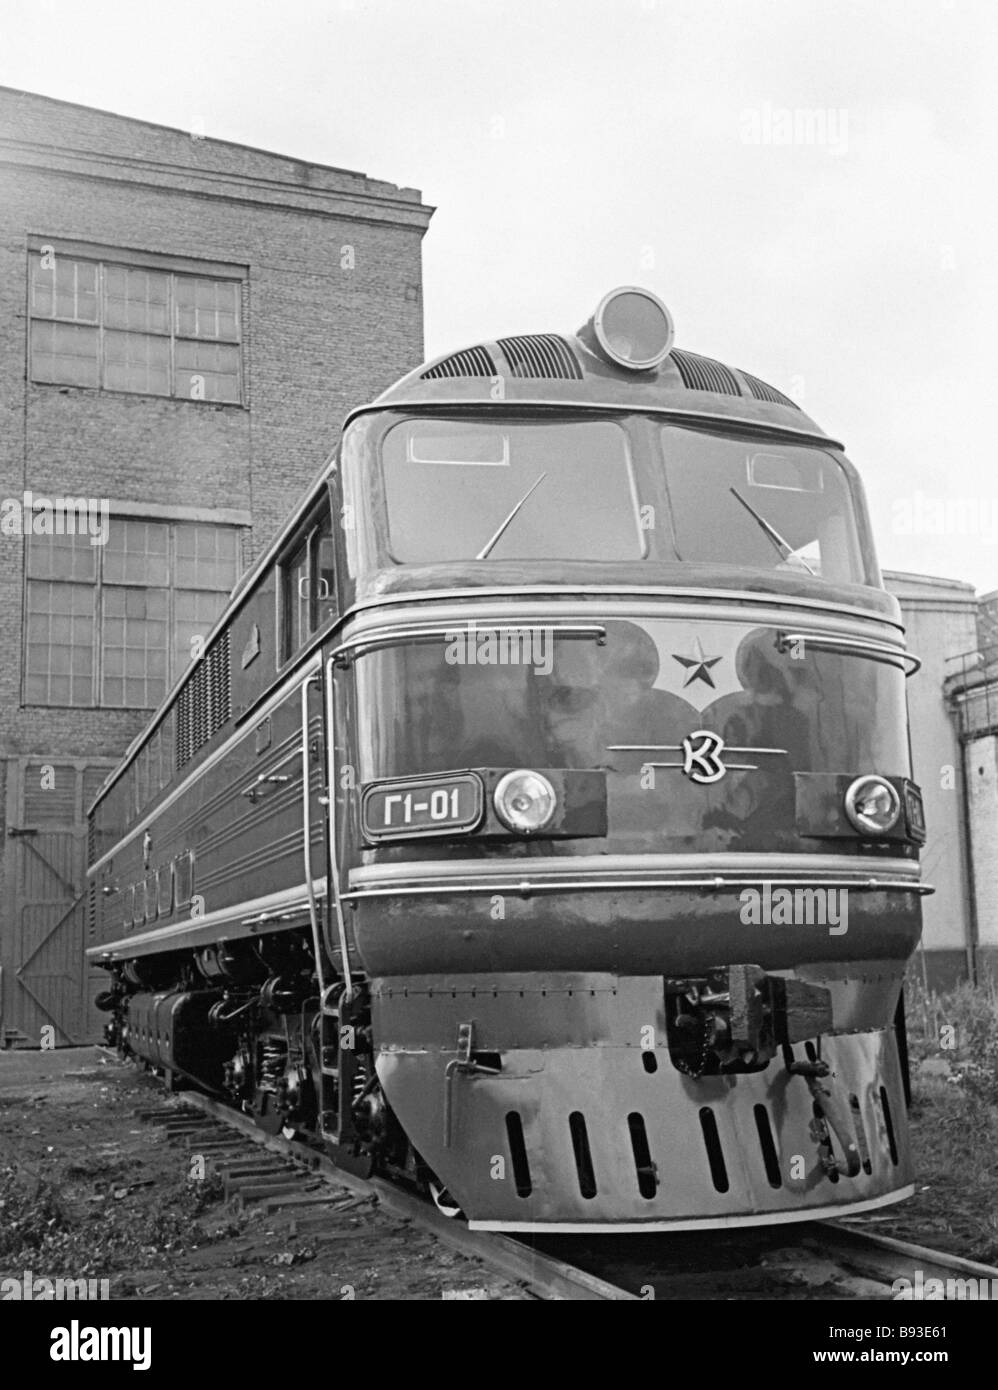 G1 01 gas turbine locomotive made in 1959 at the Kolomna diesel locomotive plant - Stock Image